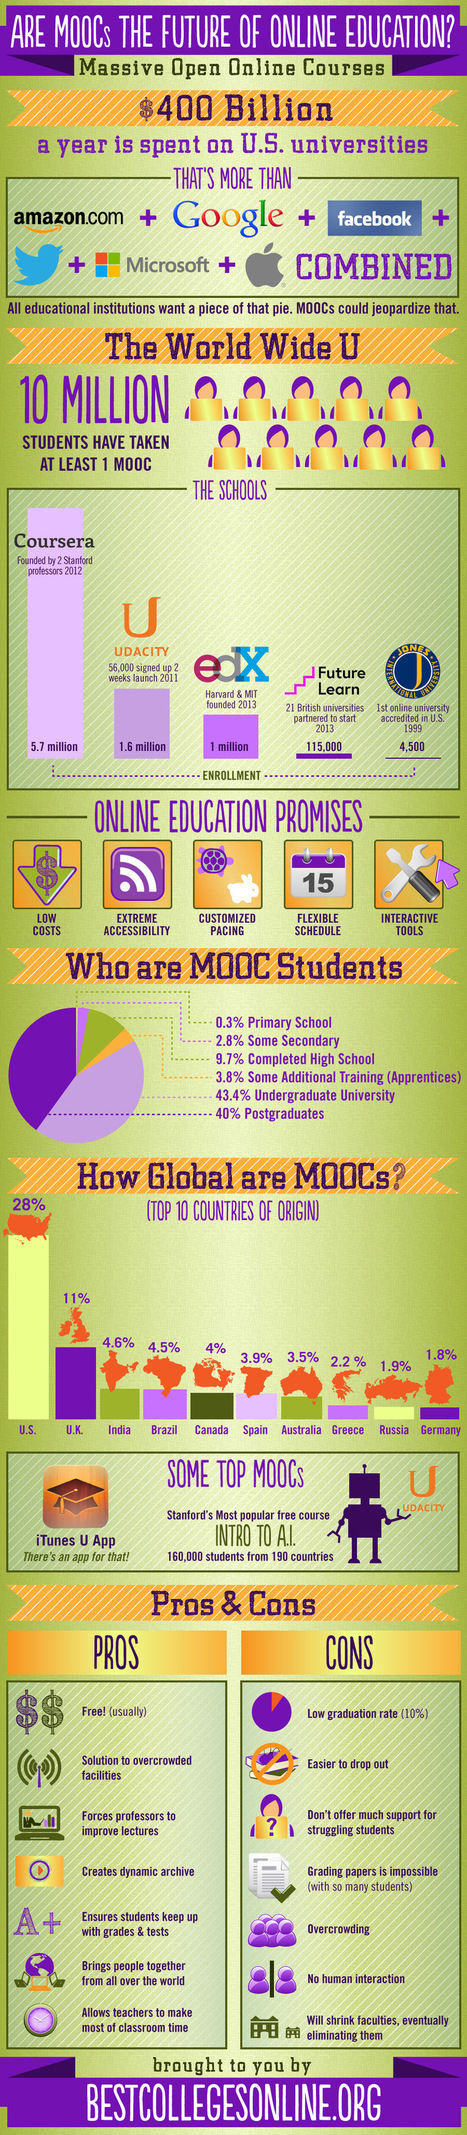 Are MOOCs the Future of Online Education? Infographic - e-Learning Infographics | Wiki_Universe | Scoop.it